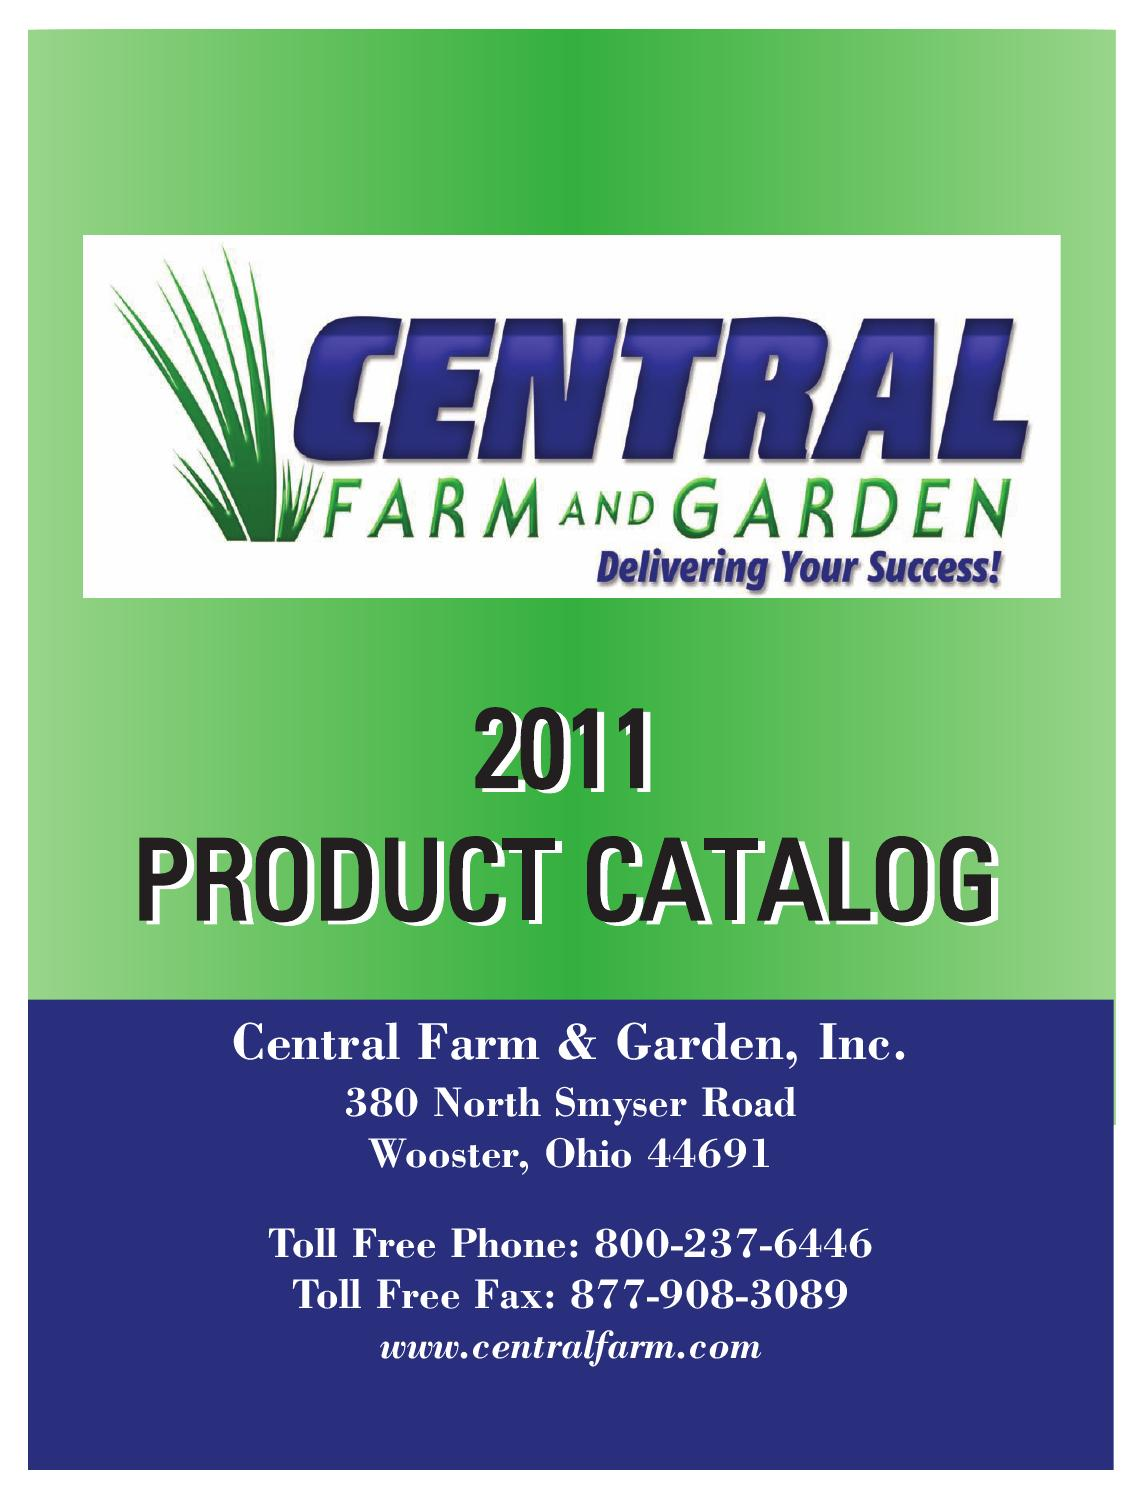 Central Farm Garden By Lee Publications Issuu Ready 4 Pole To 5 Trailer Wiring Adapter Tow 20036